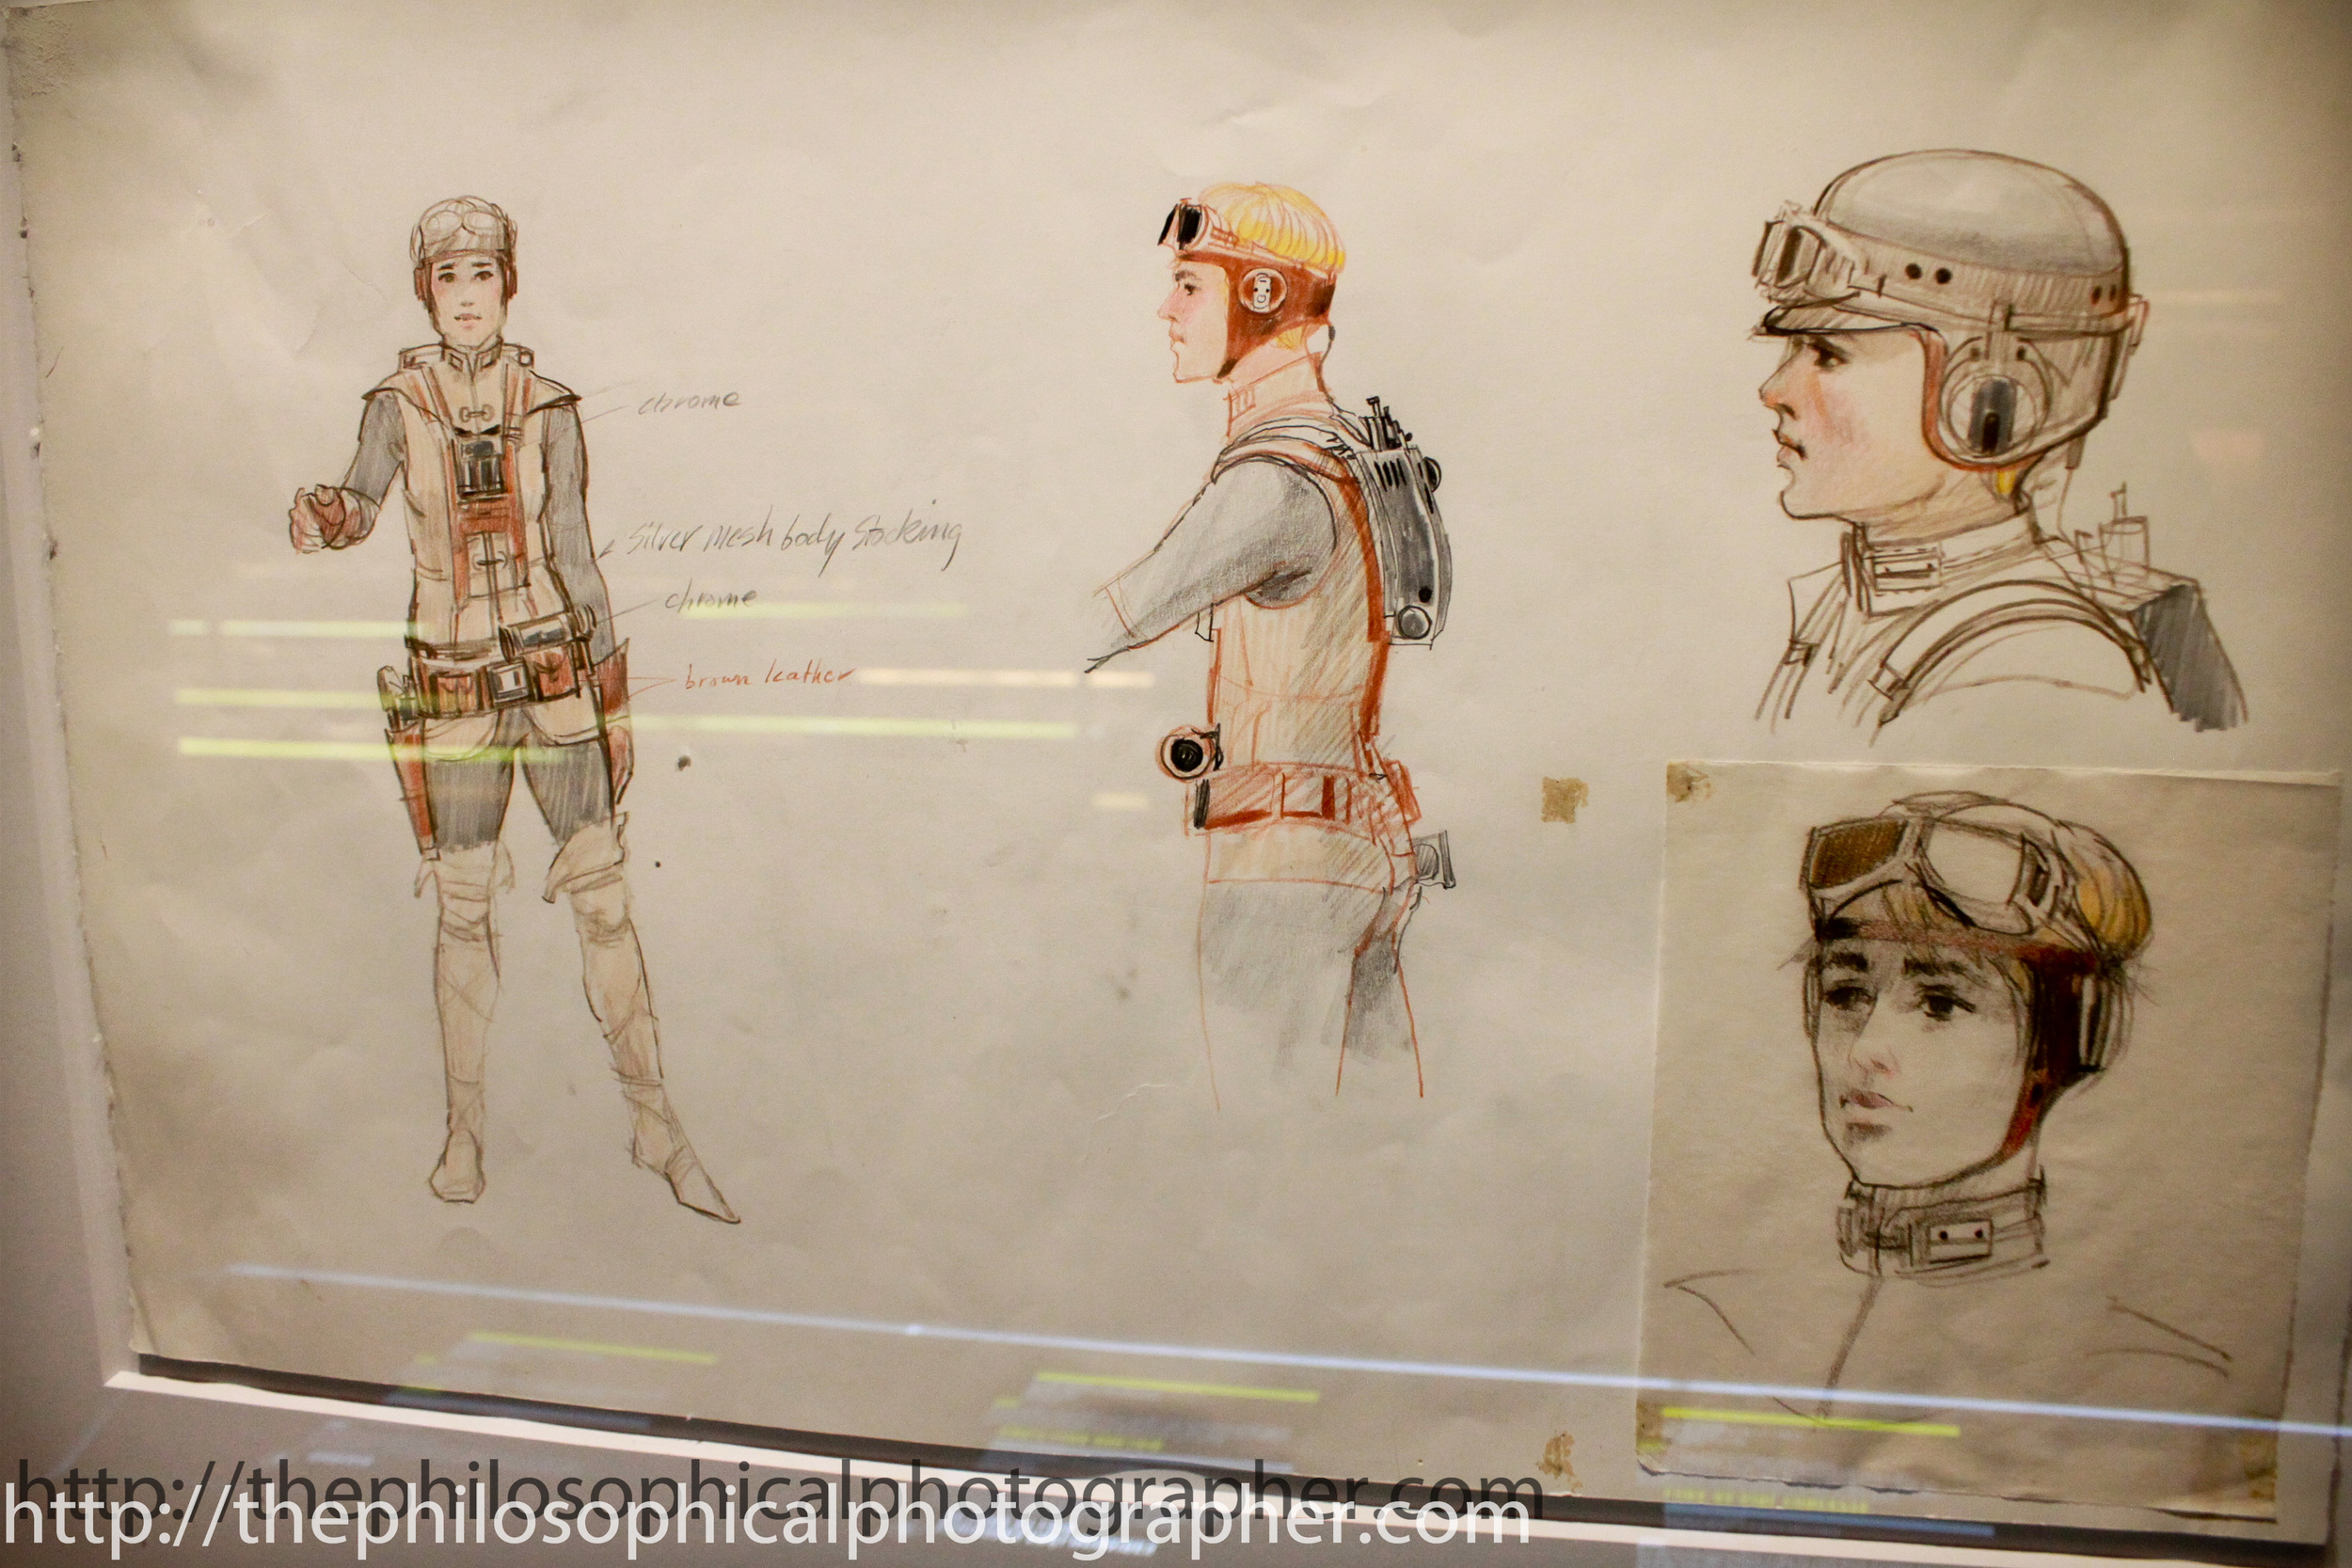 Early concepts with Luke as a female.